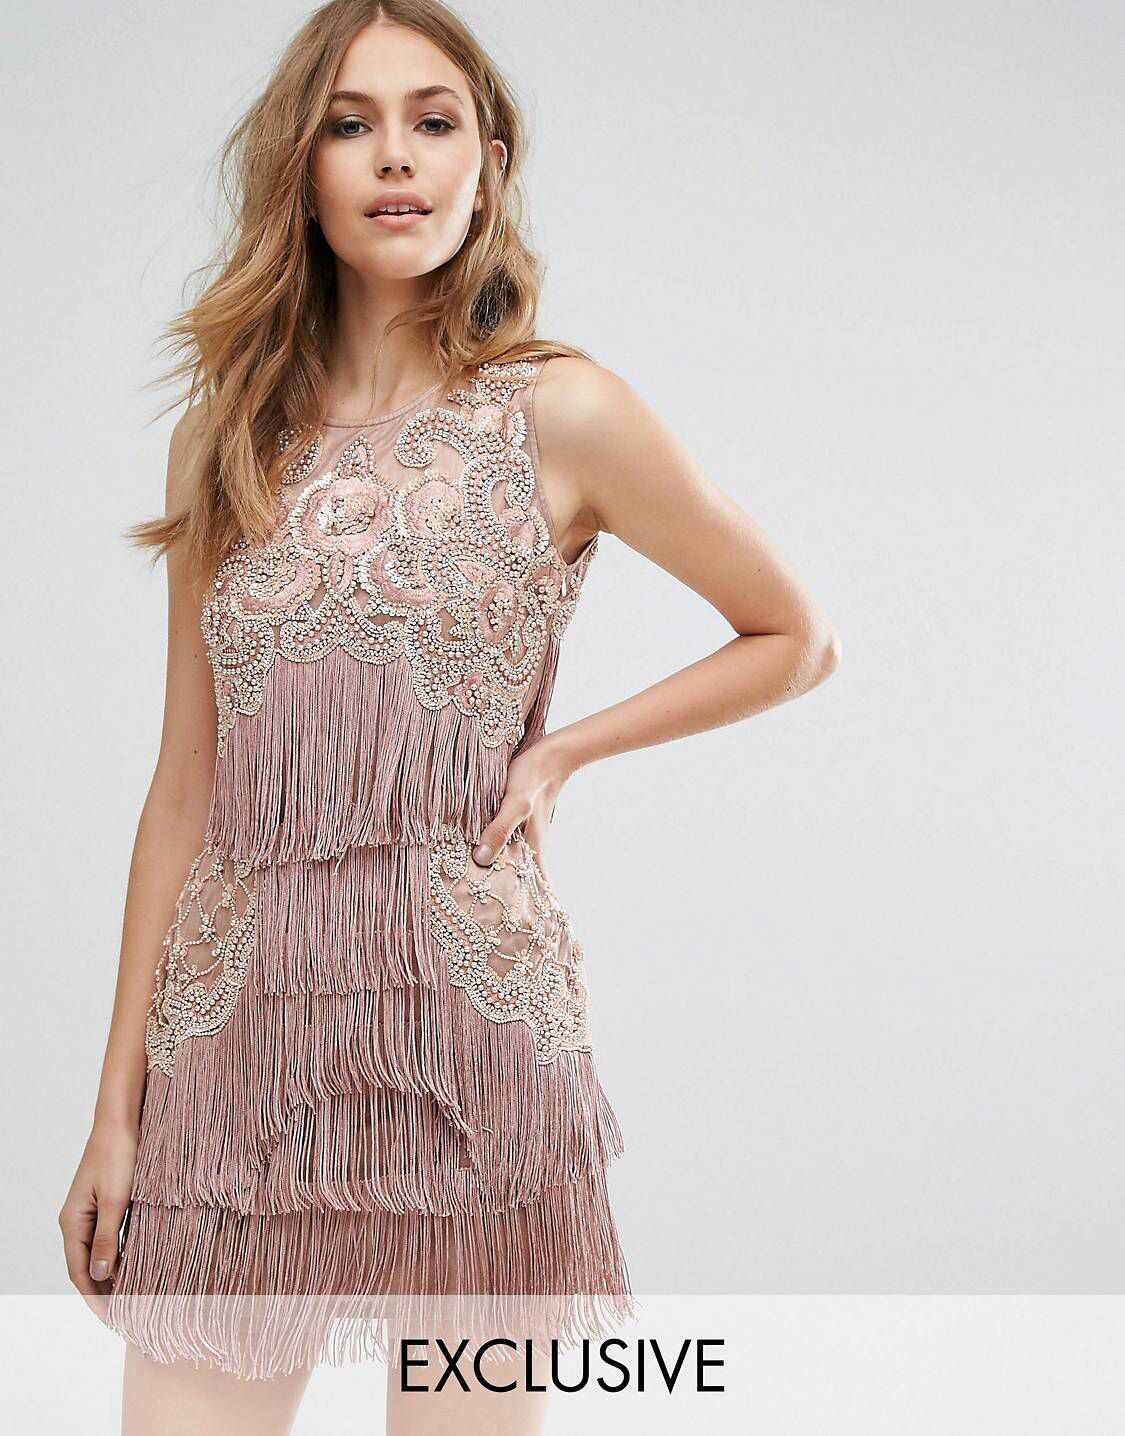 A Star is Born Mini-fringe dress from ASOS!  Born dress, Fringe